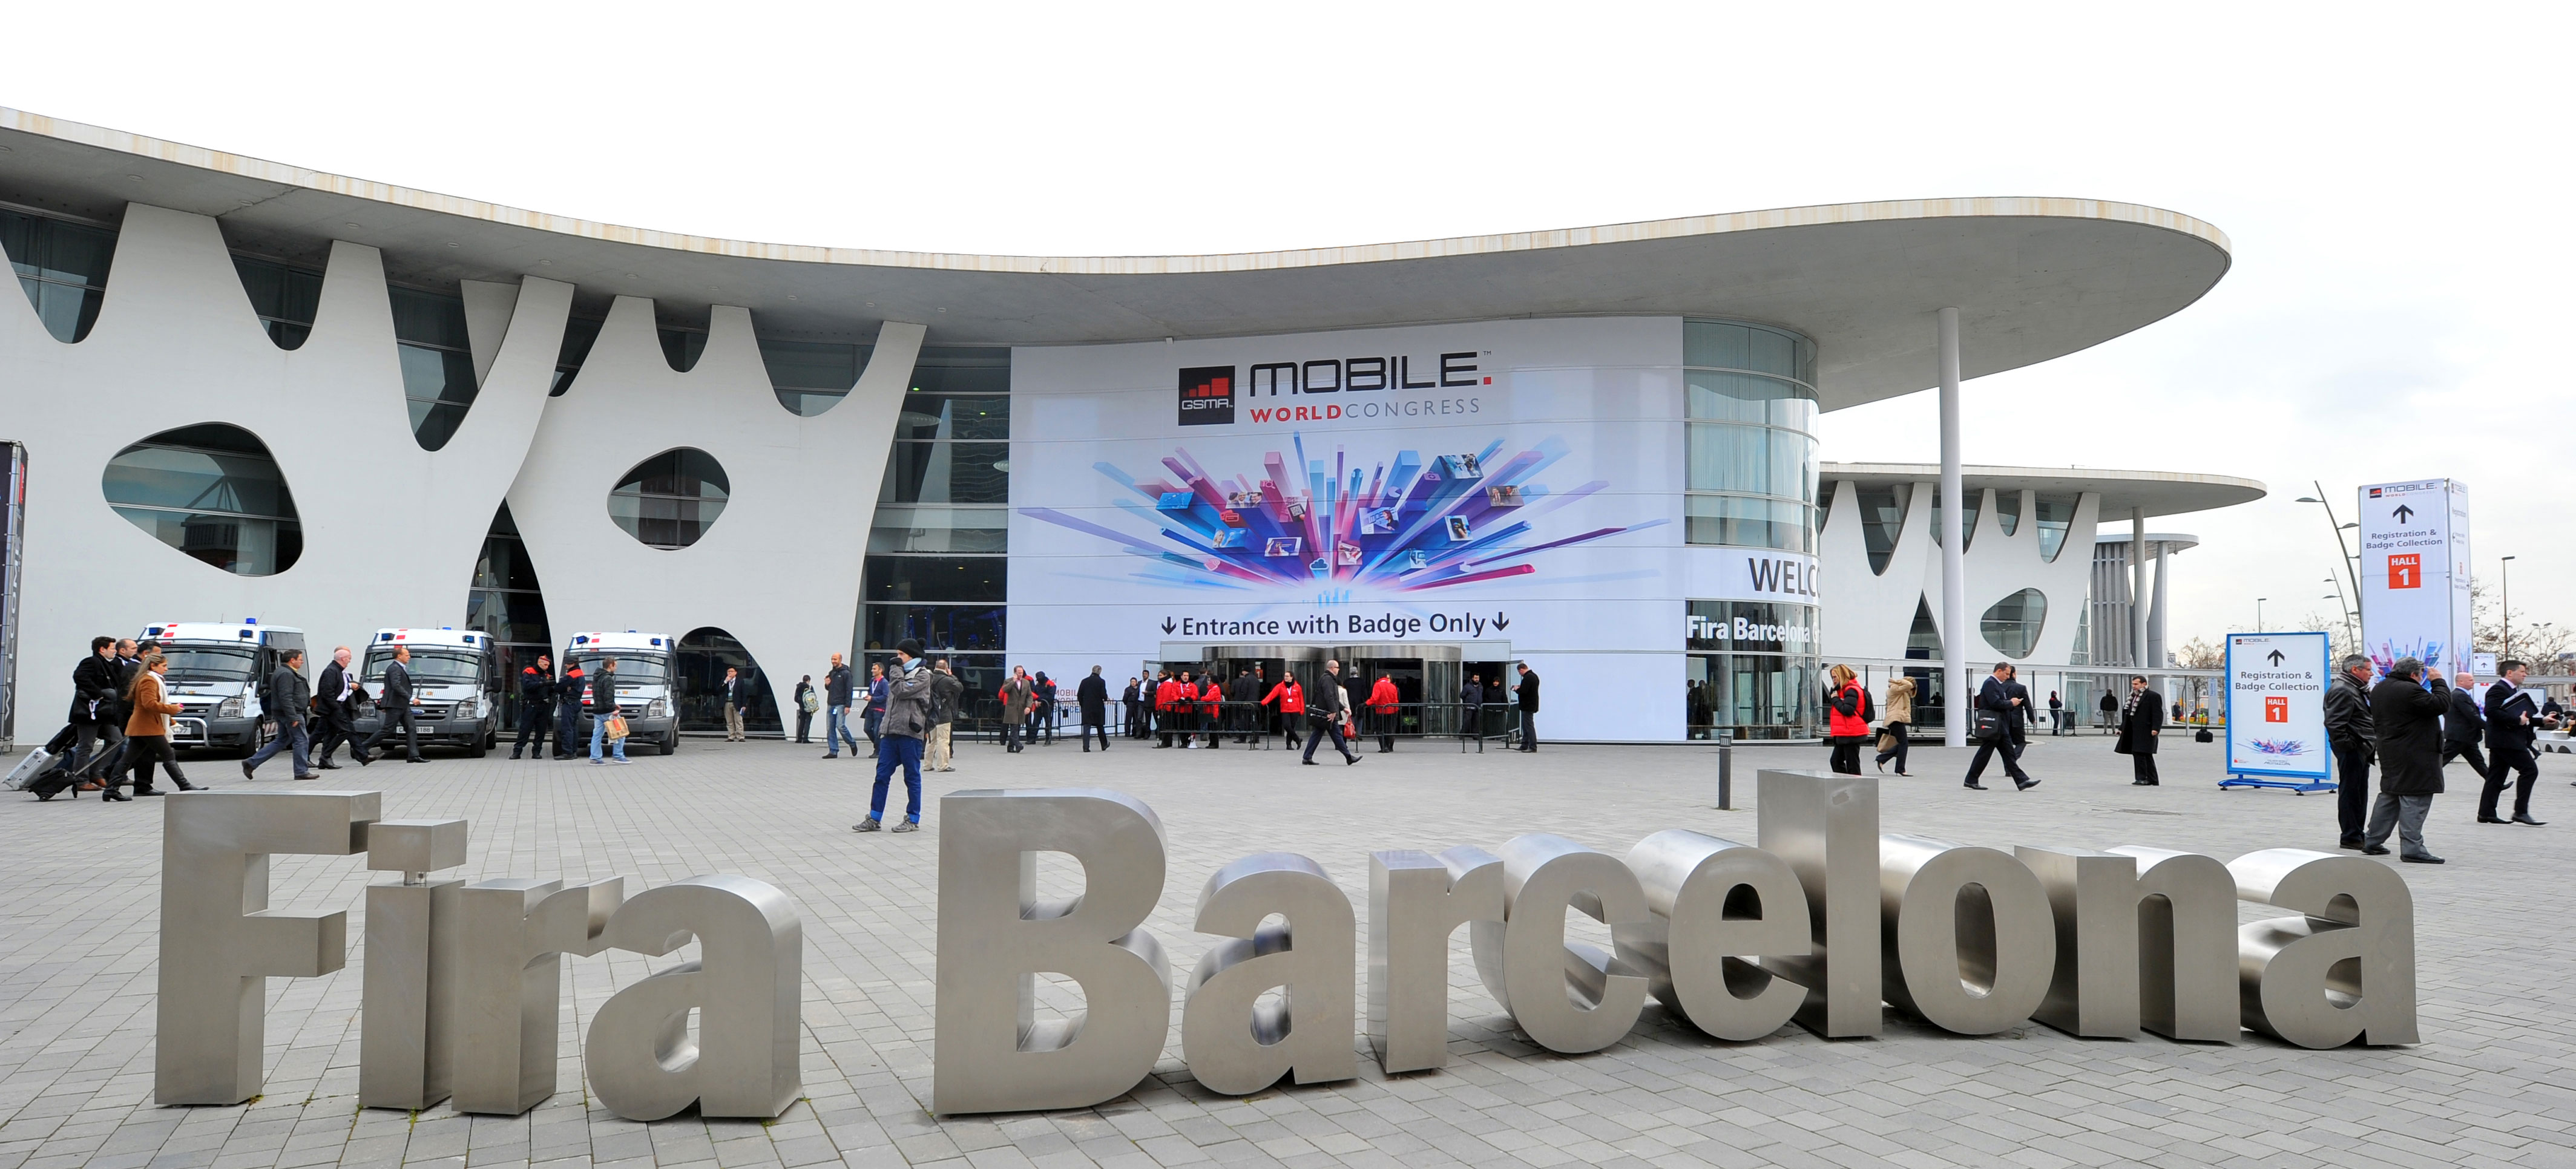 Mobile World Congress 16